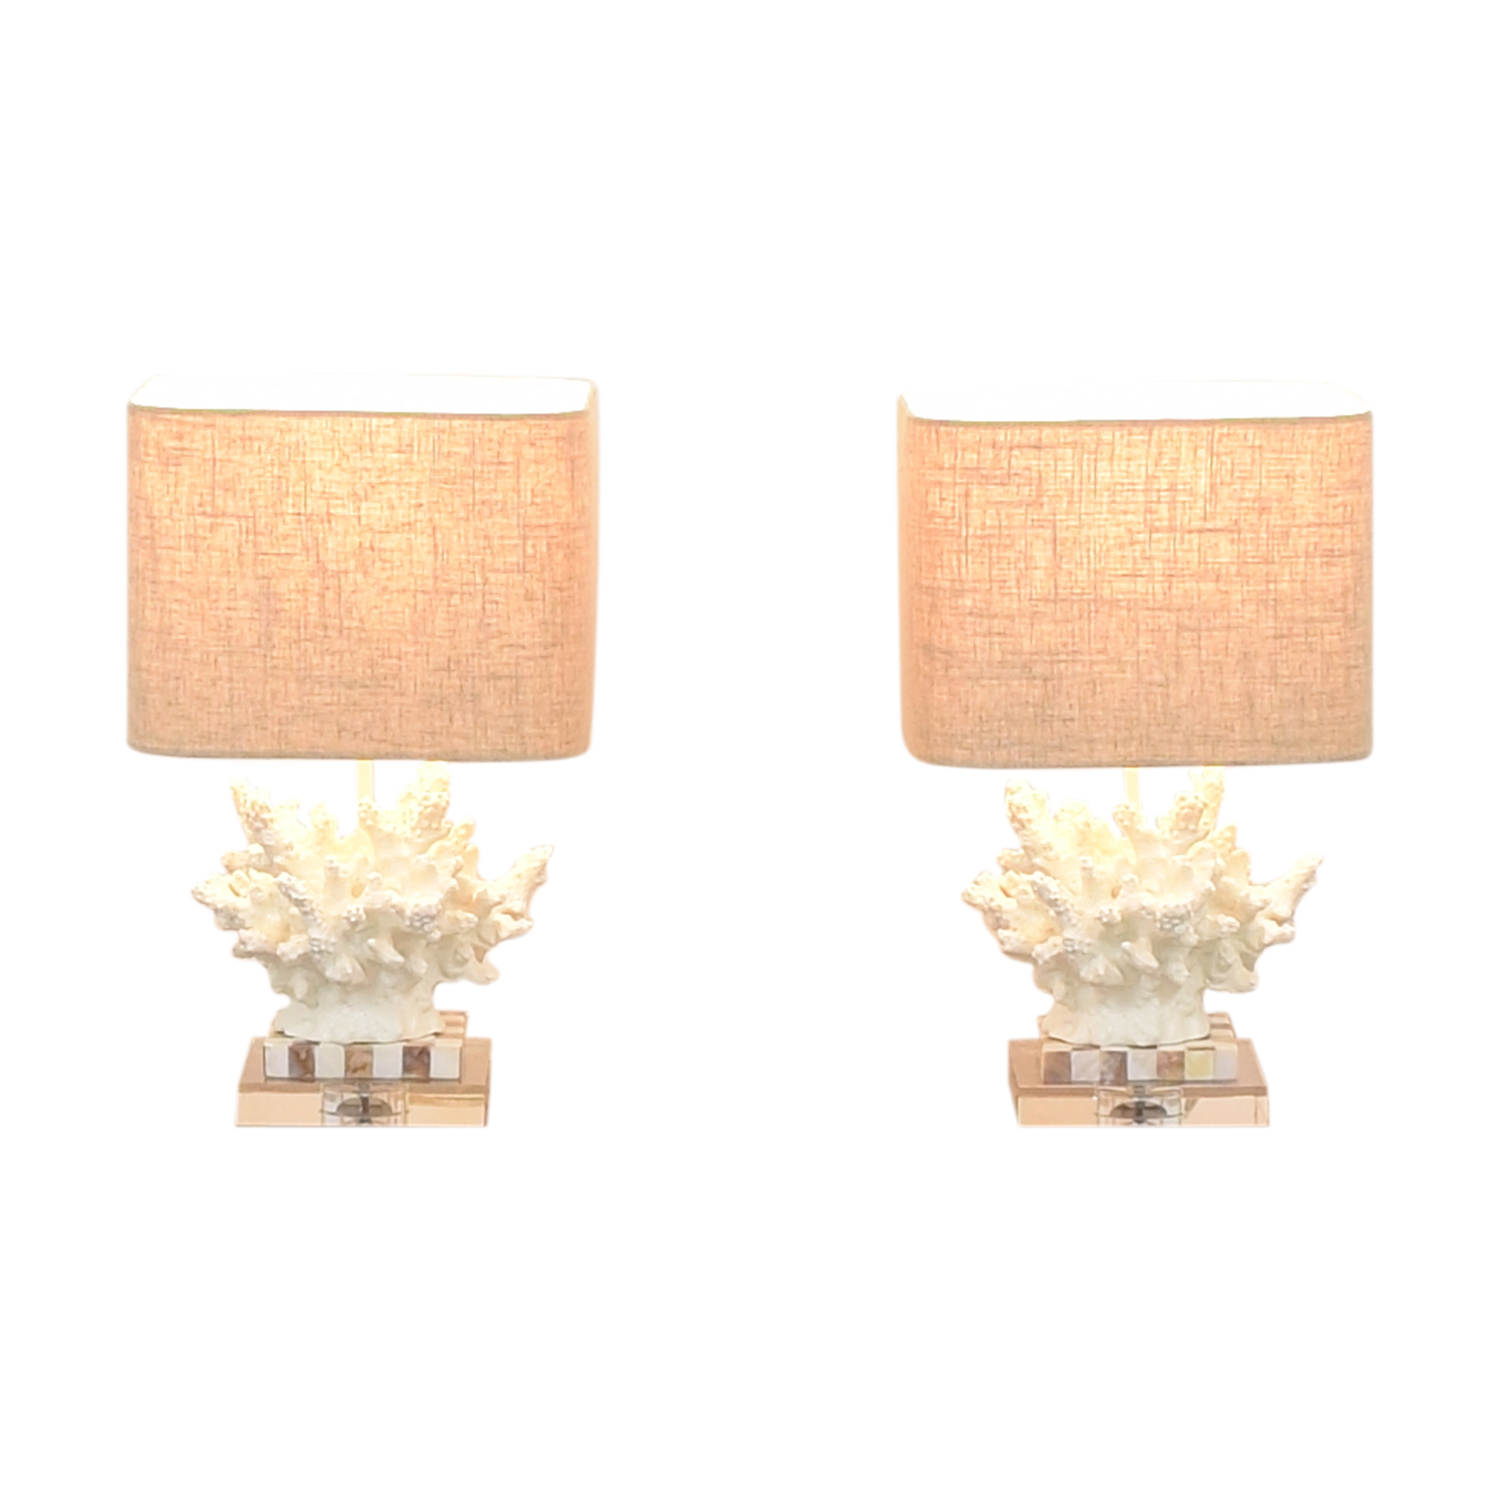 Couture Lamps Couture Lamps Wayfarer Accent Lamps white & brown